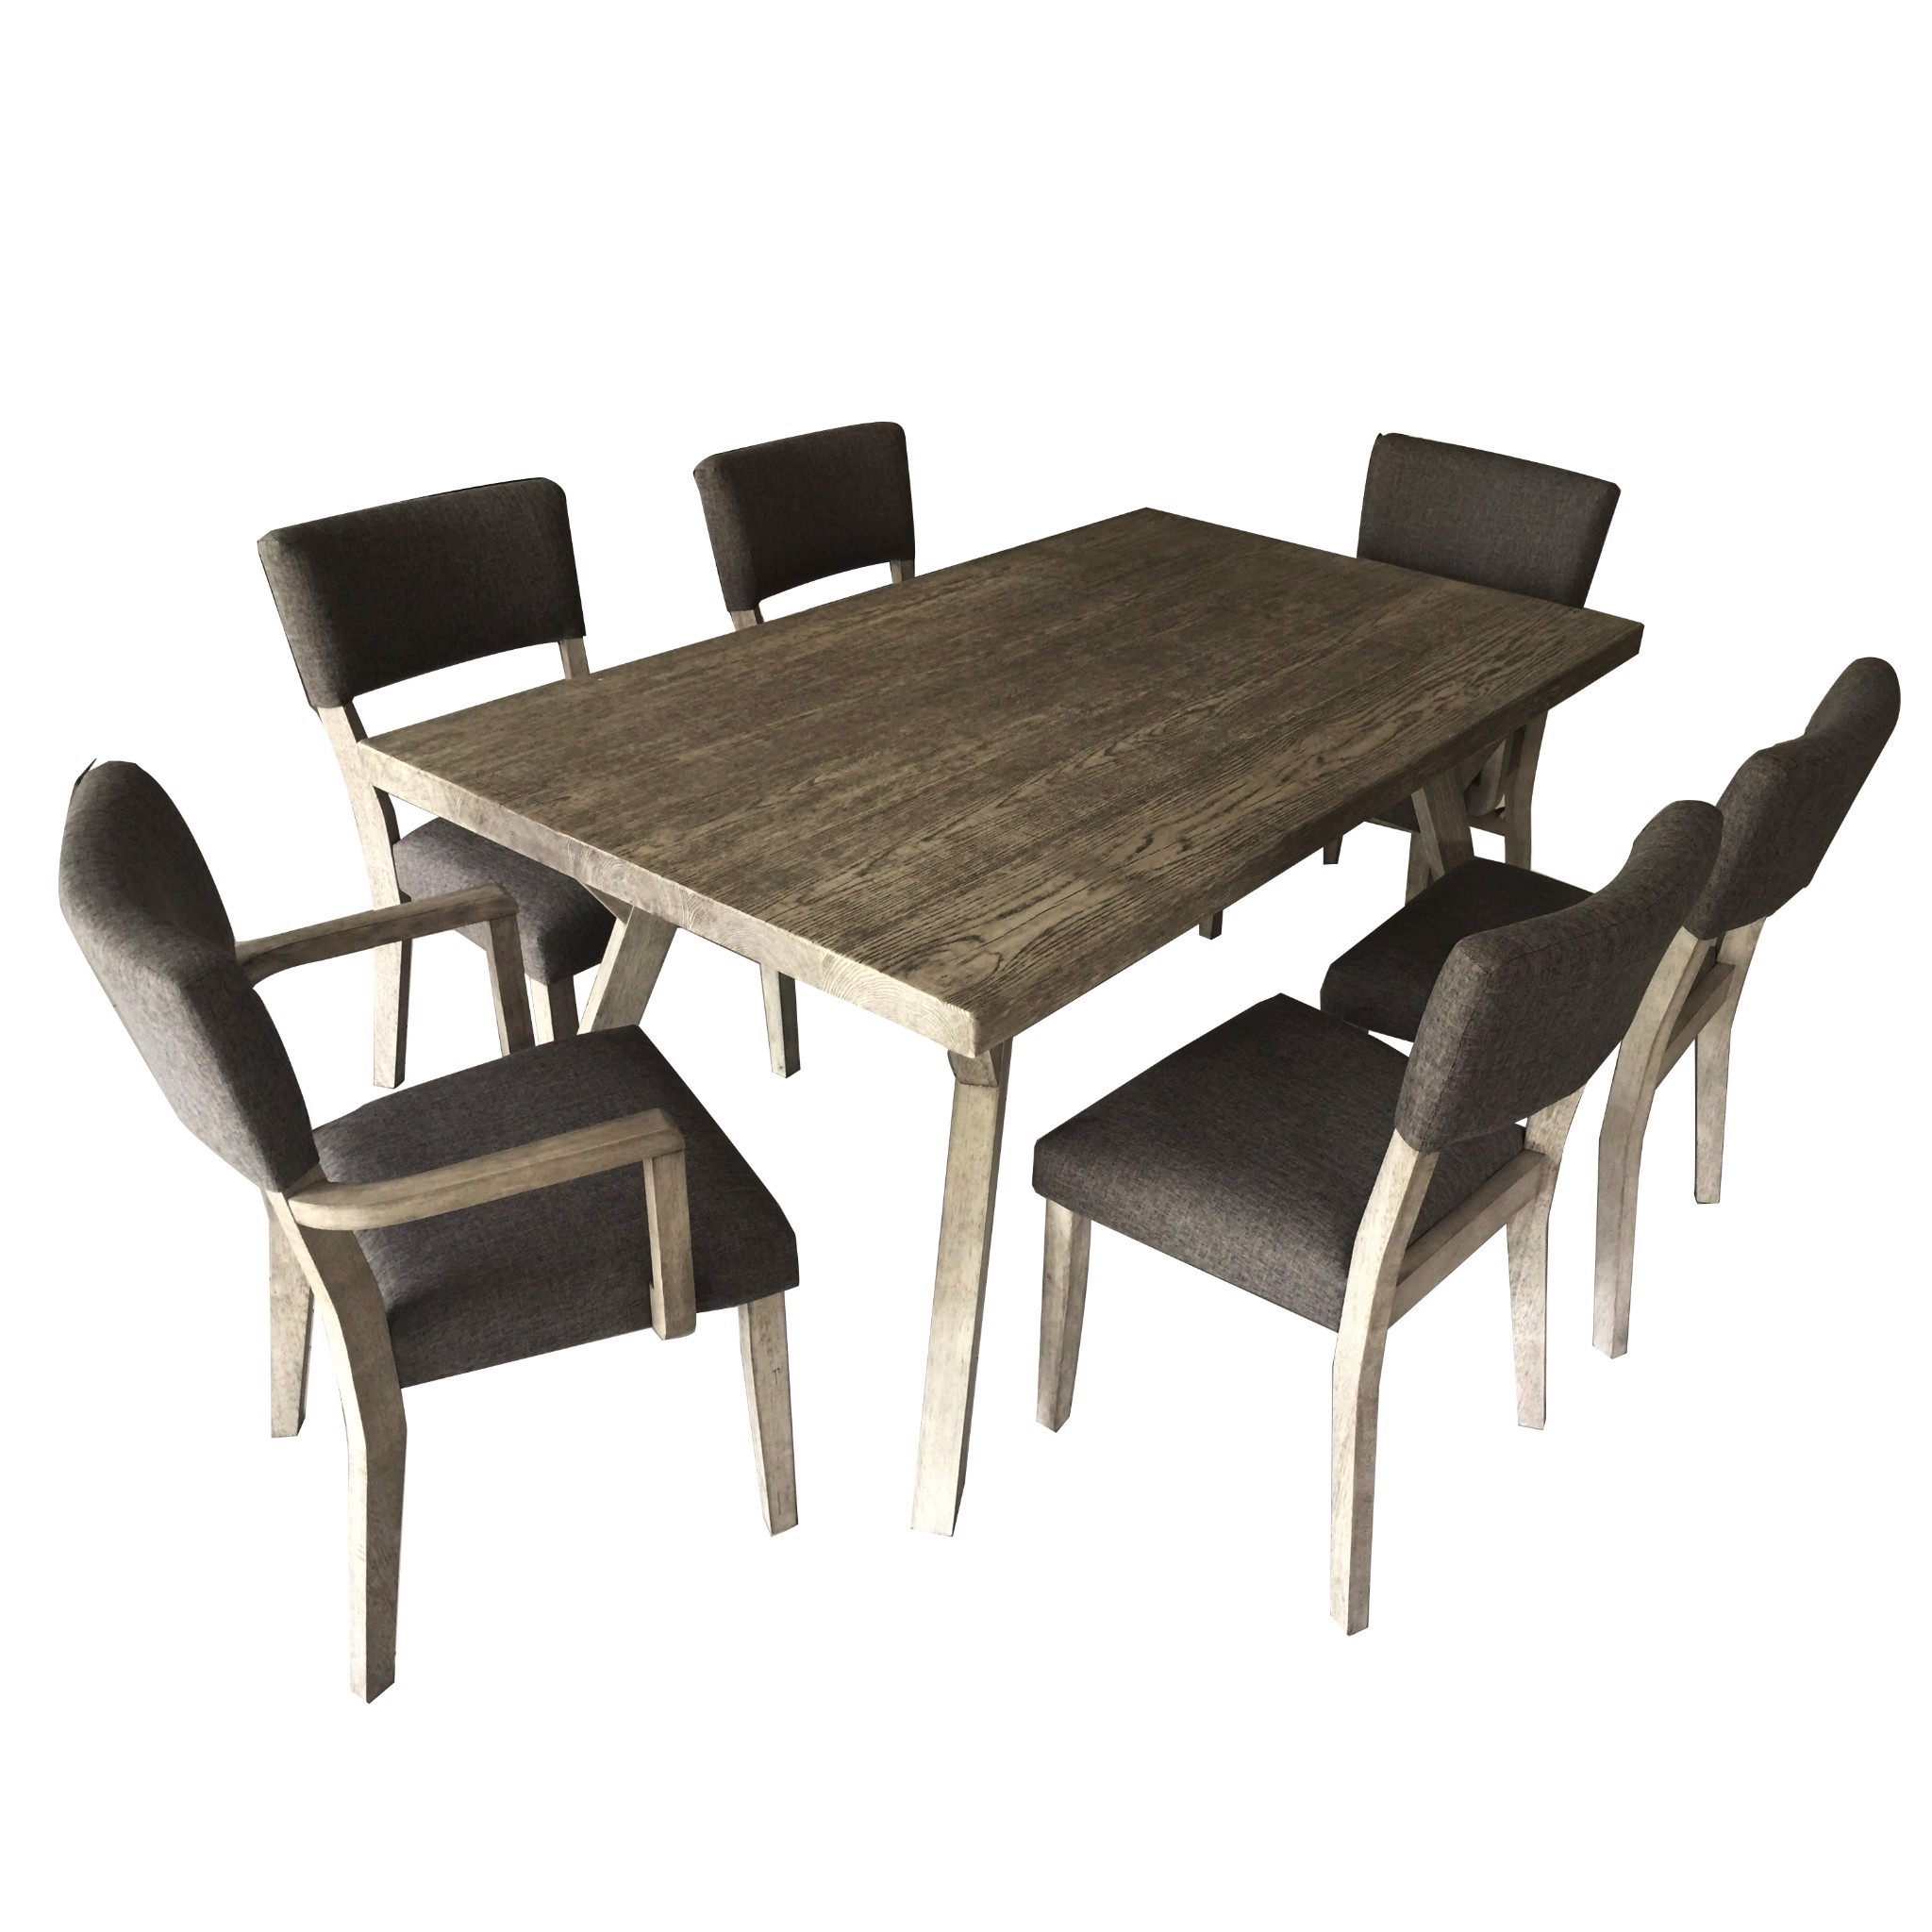 Dining table Set <br/> IDT7139